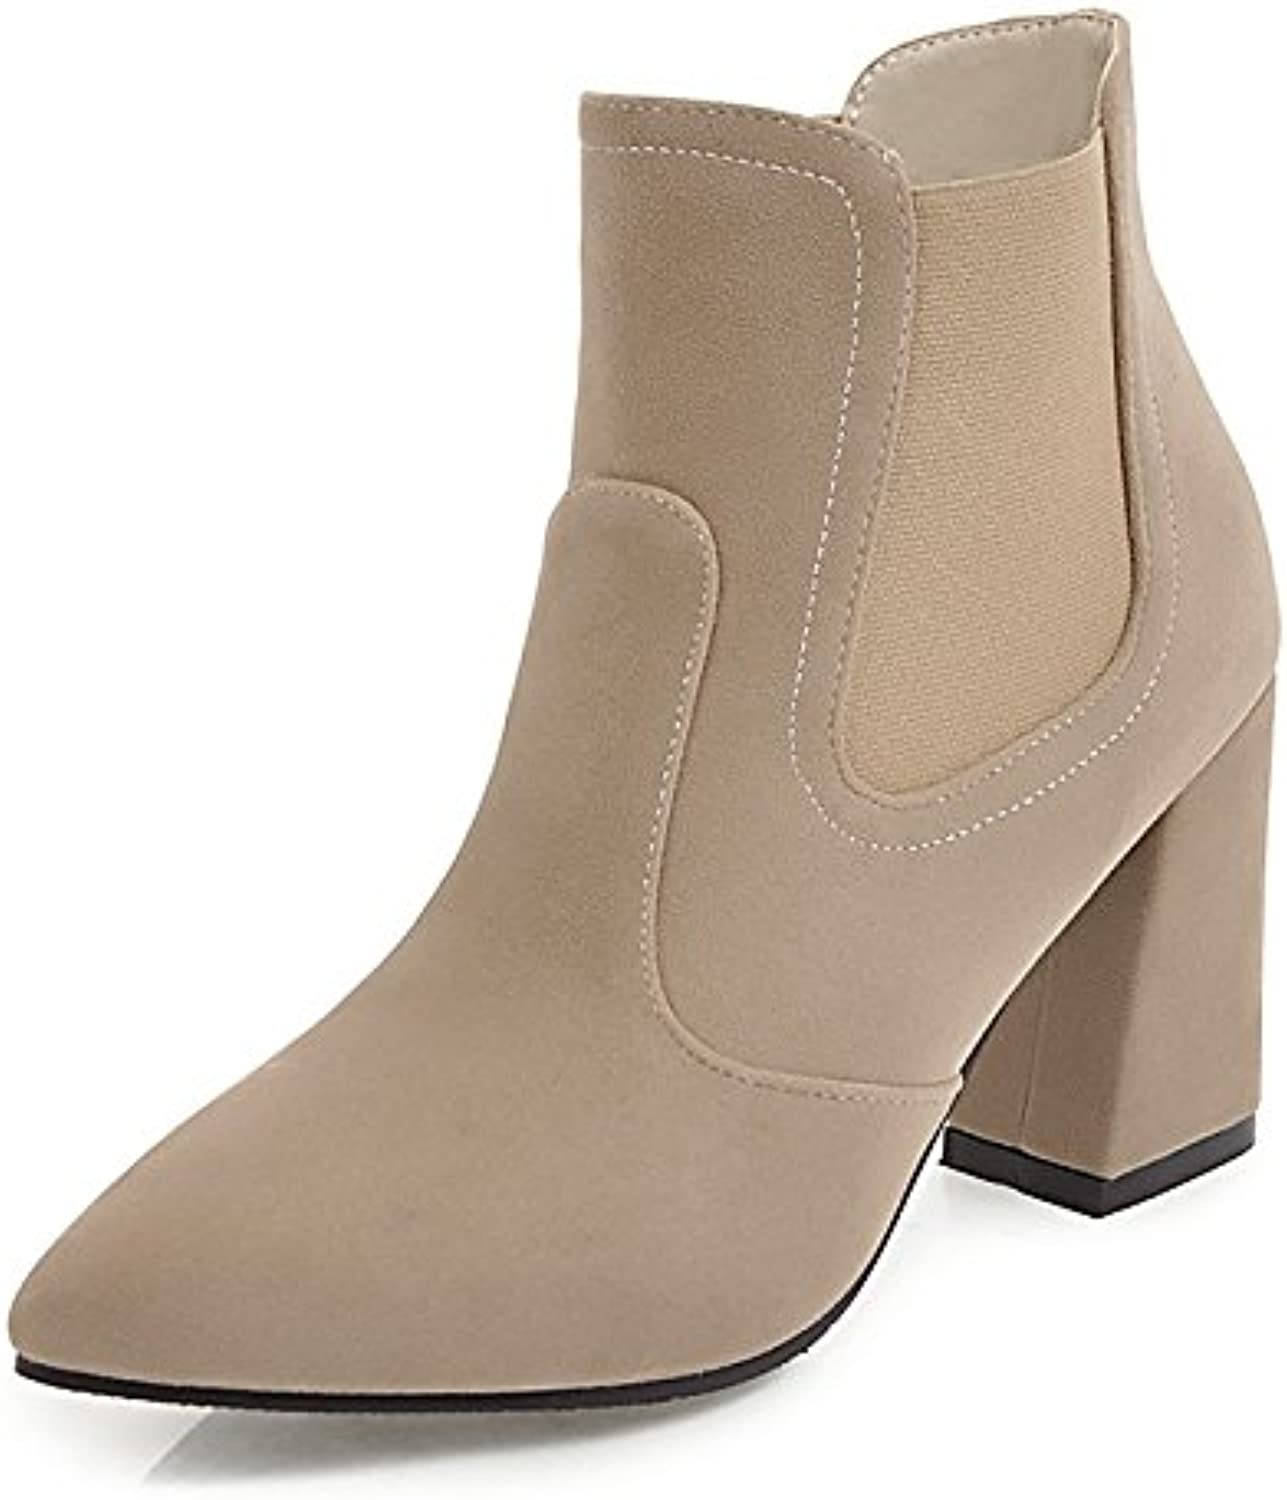 HSXZ Women's shoes Fleece Winter Fall Fashion Boots Bootie Boots Chunky Heel Pointed Toe Booties Ankle Boots MidCalf Boots for Dress Office